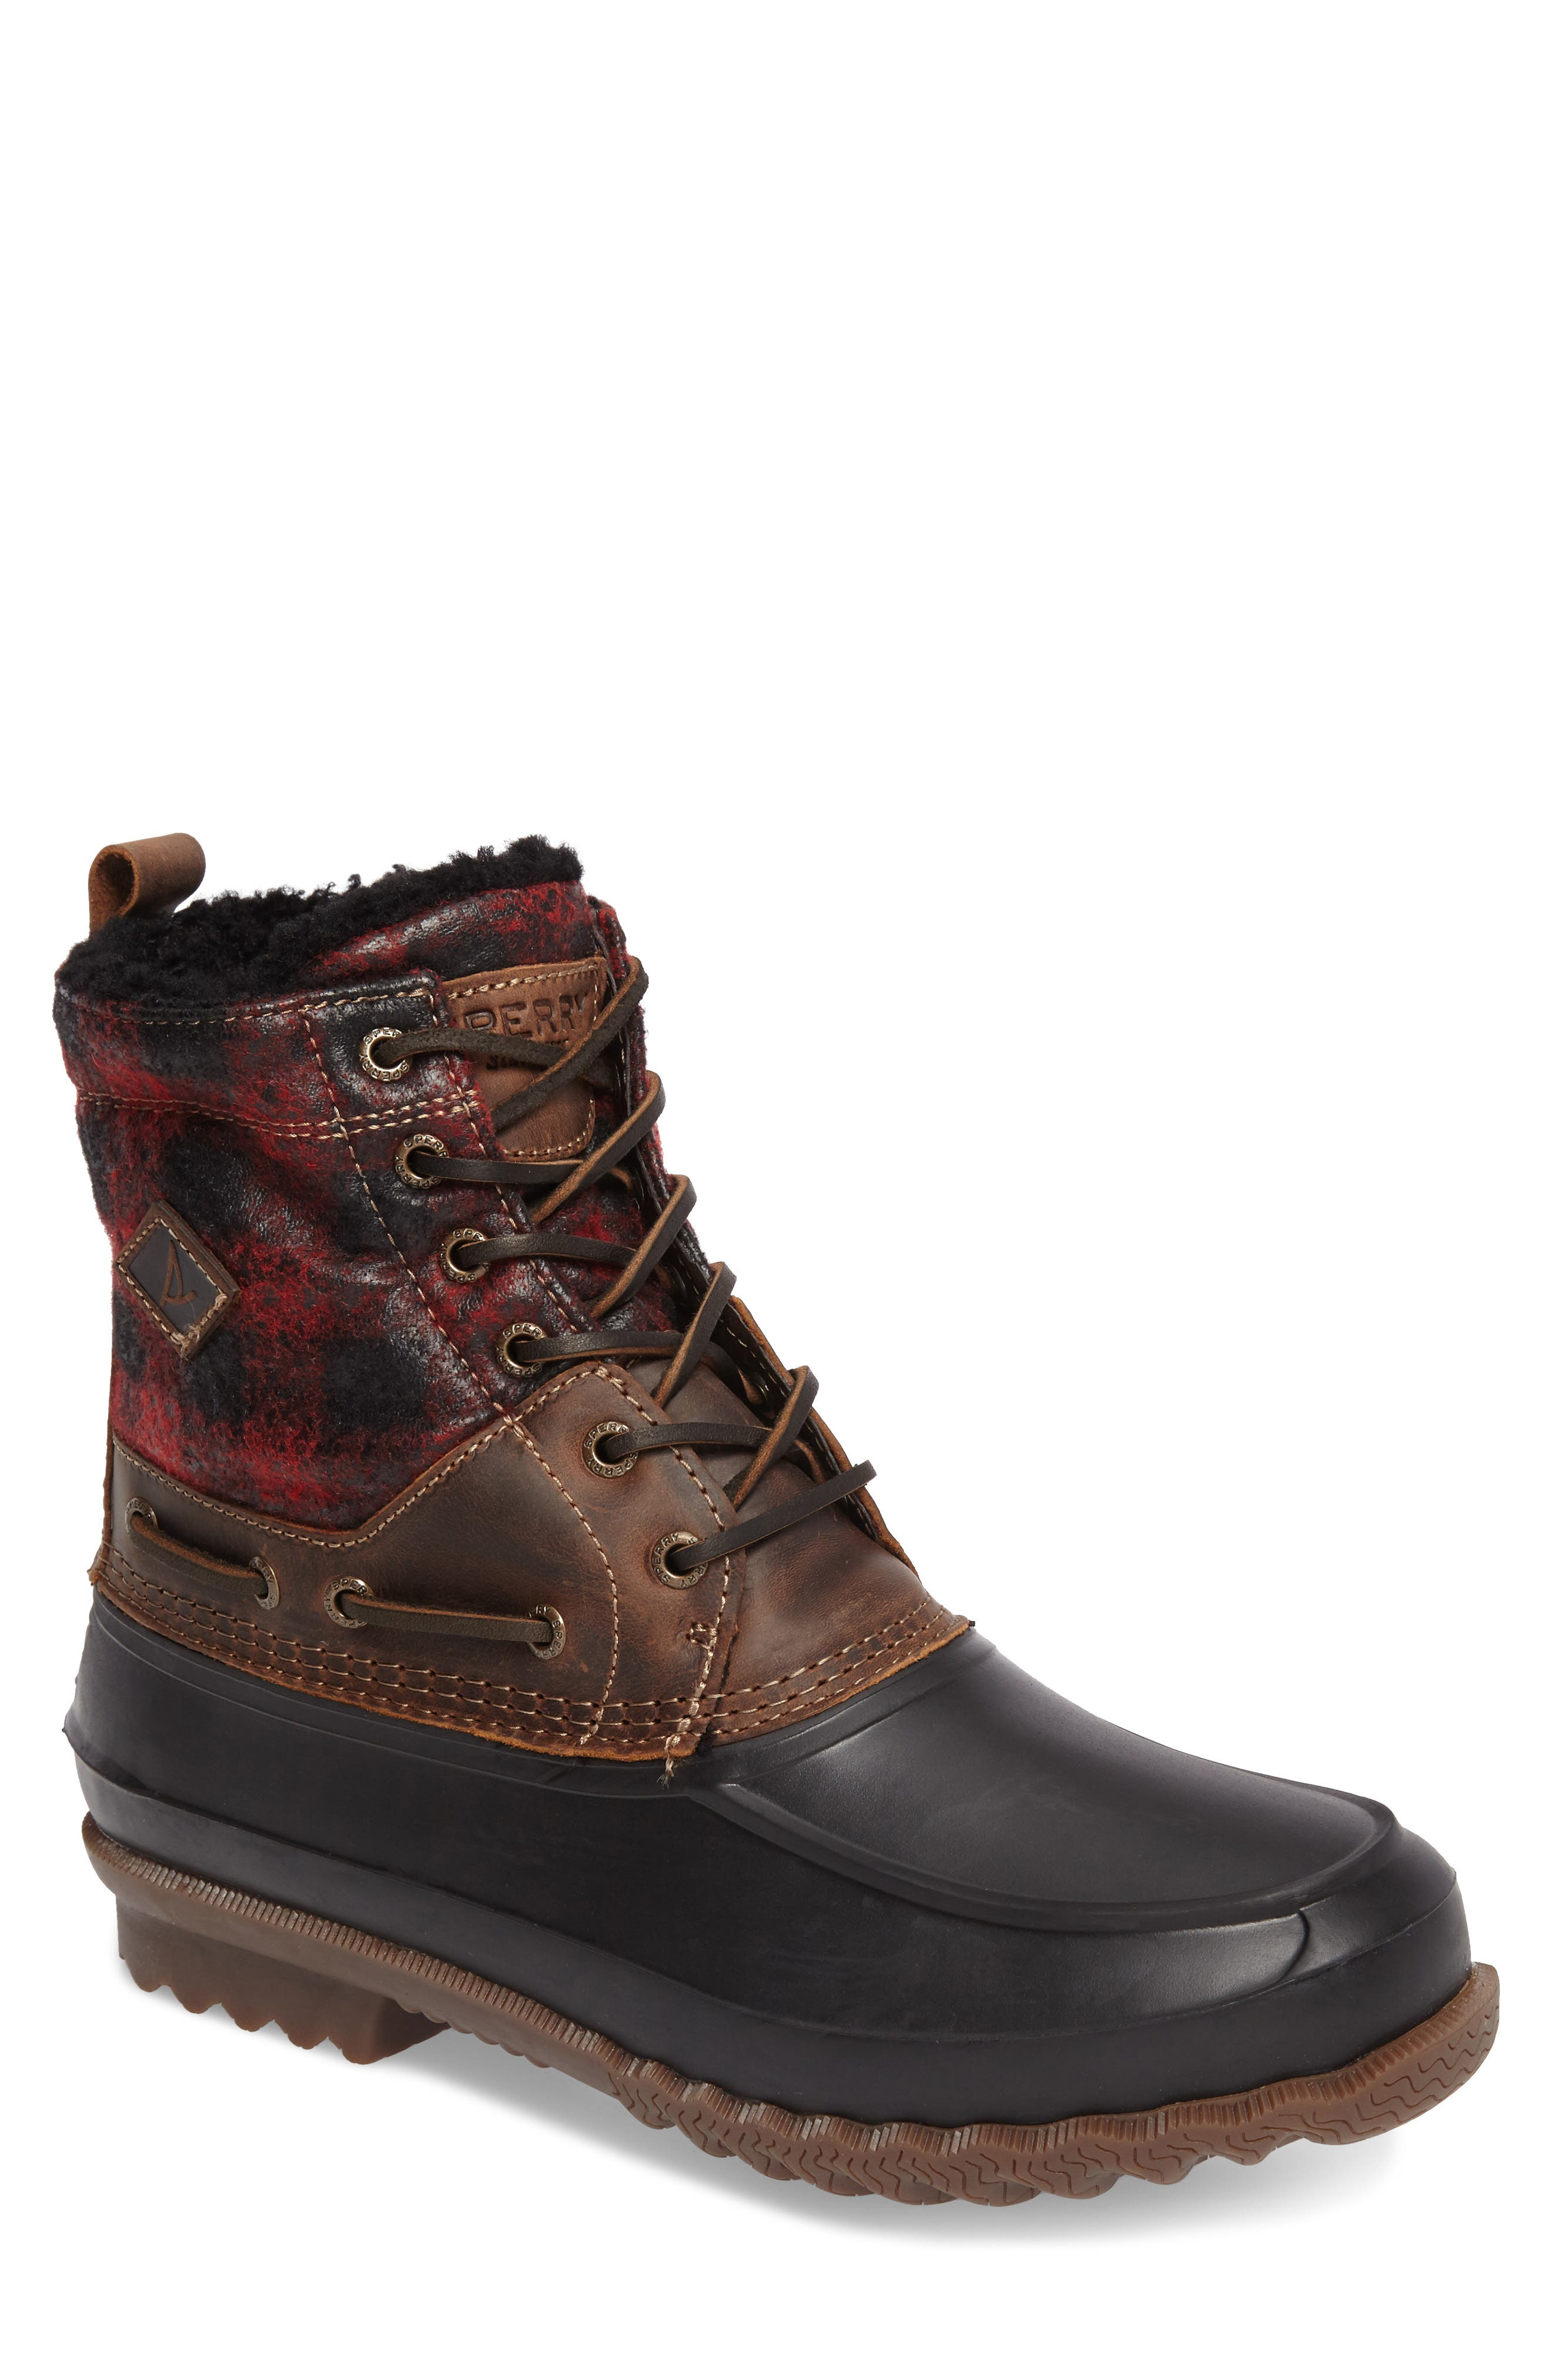 Sperry Decoy Moc Toe Boot with Genuine Shearling (Men)